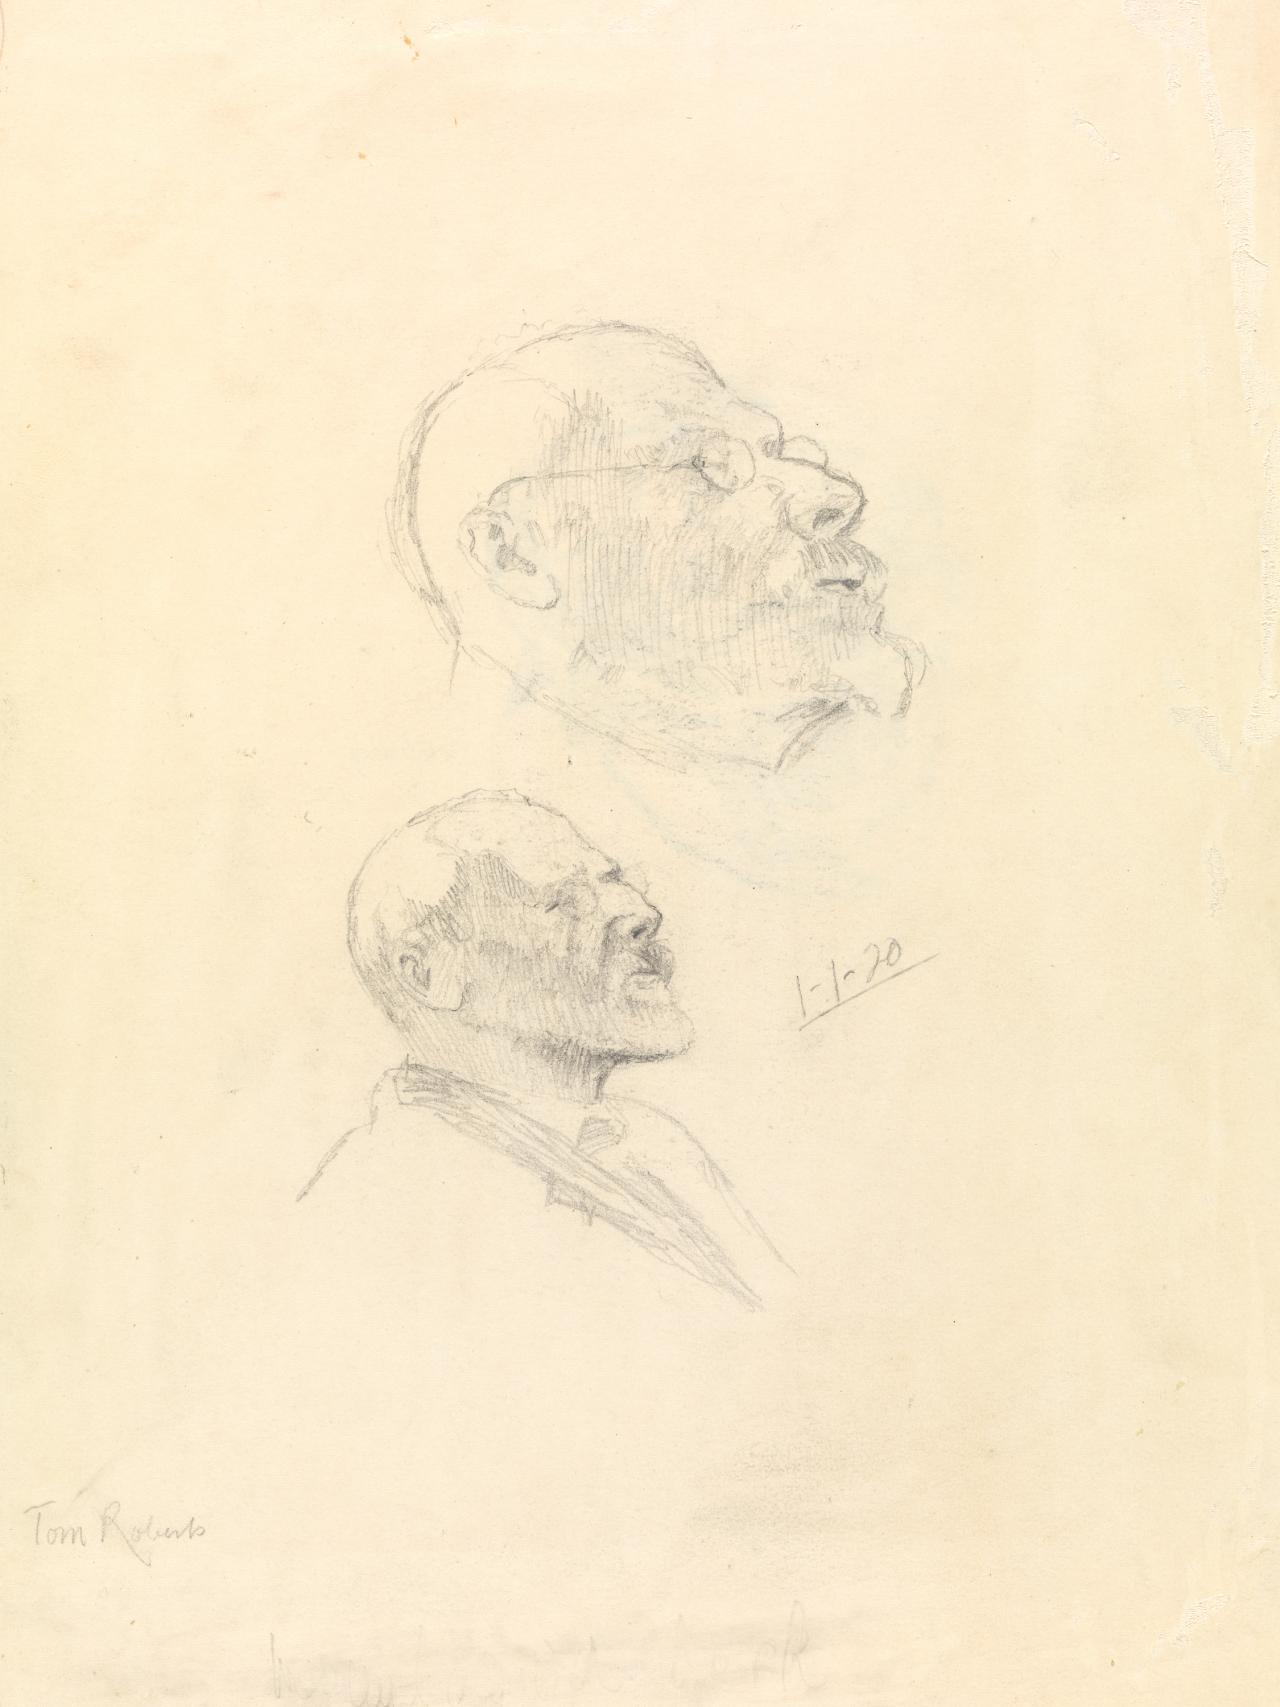 Two self-portrait sketches